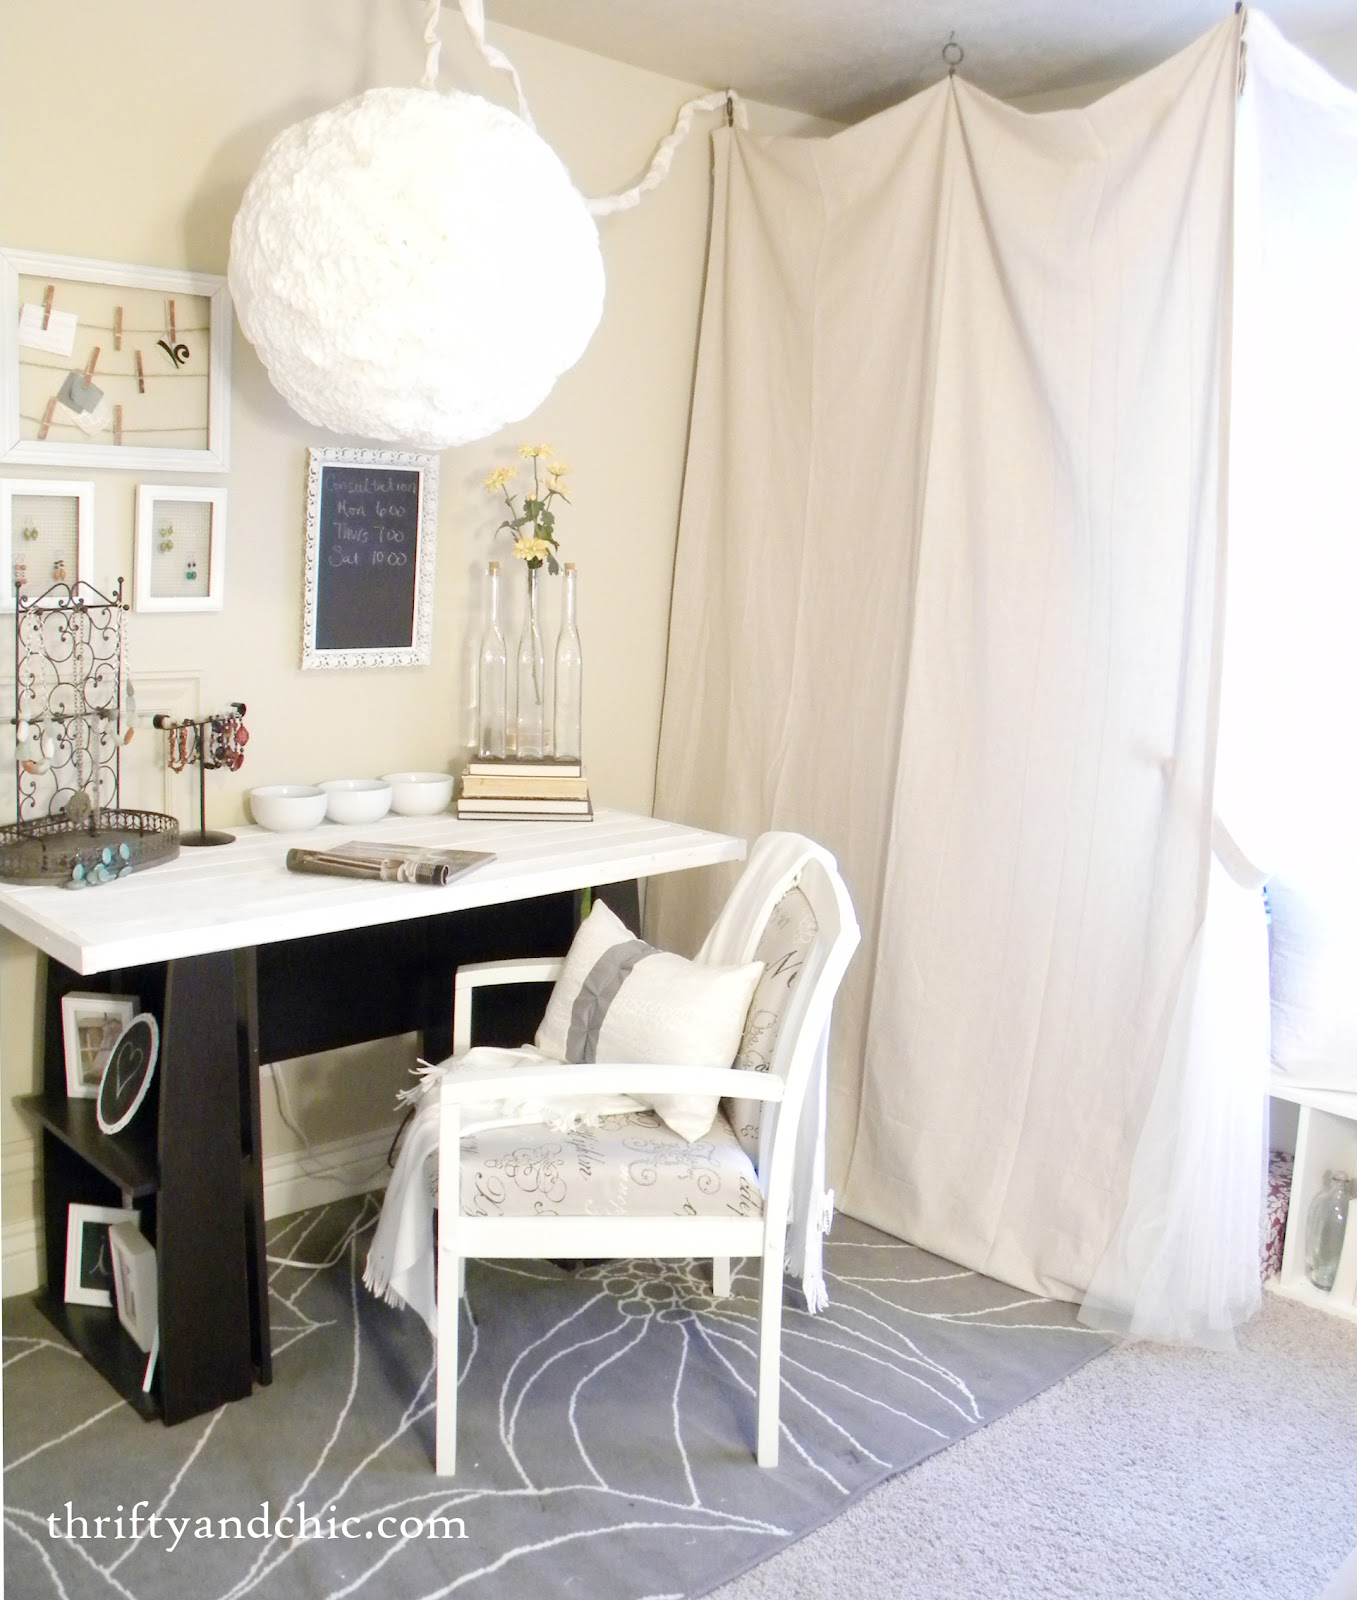 Diy Home Office Ideas: DIY Projects And Home Decor